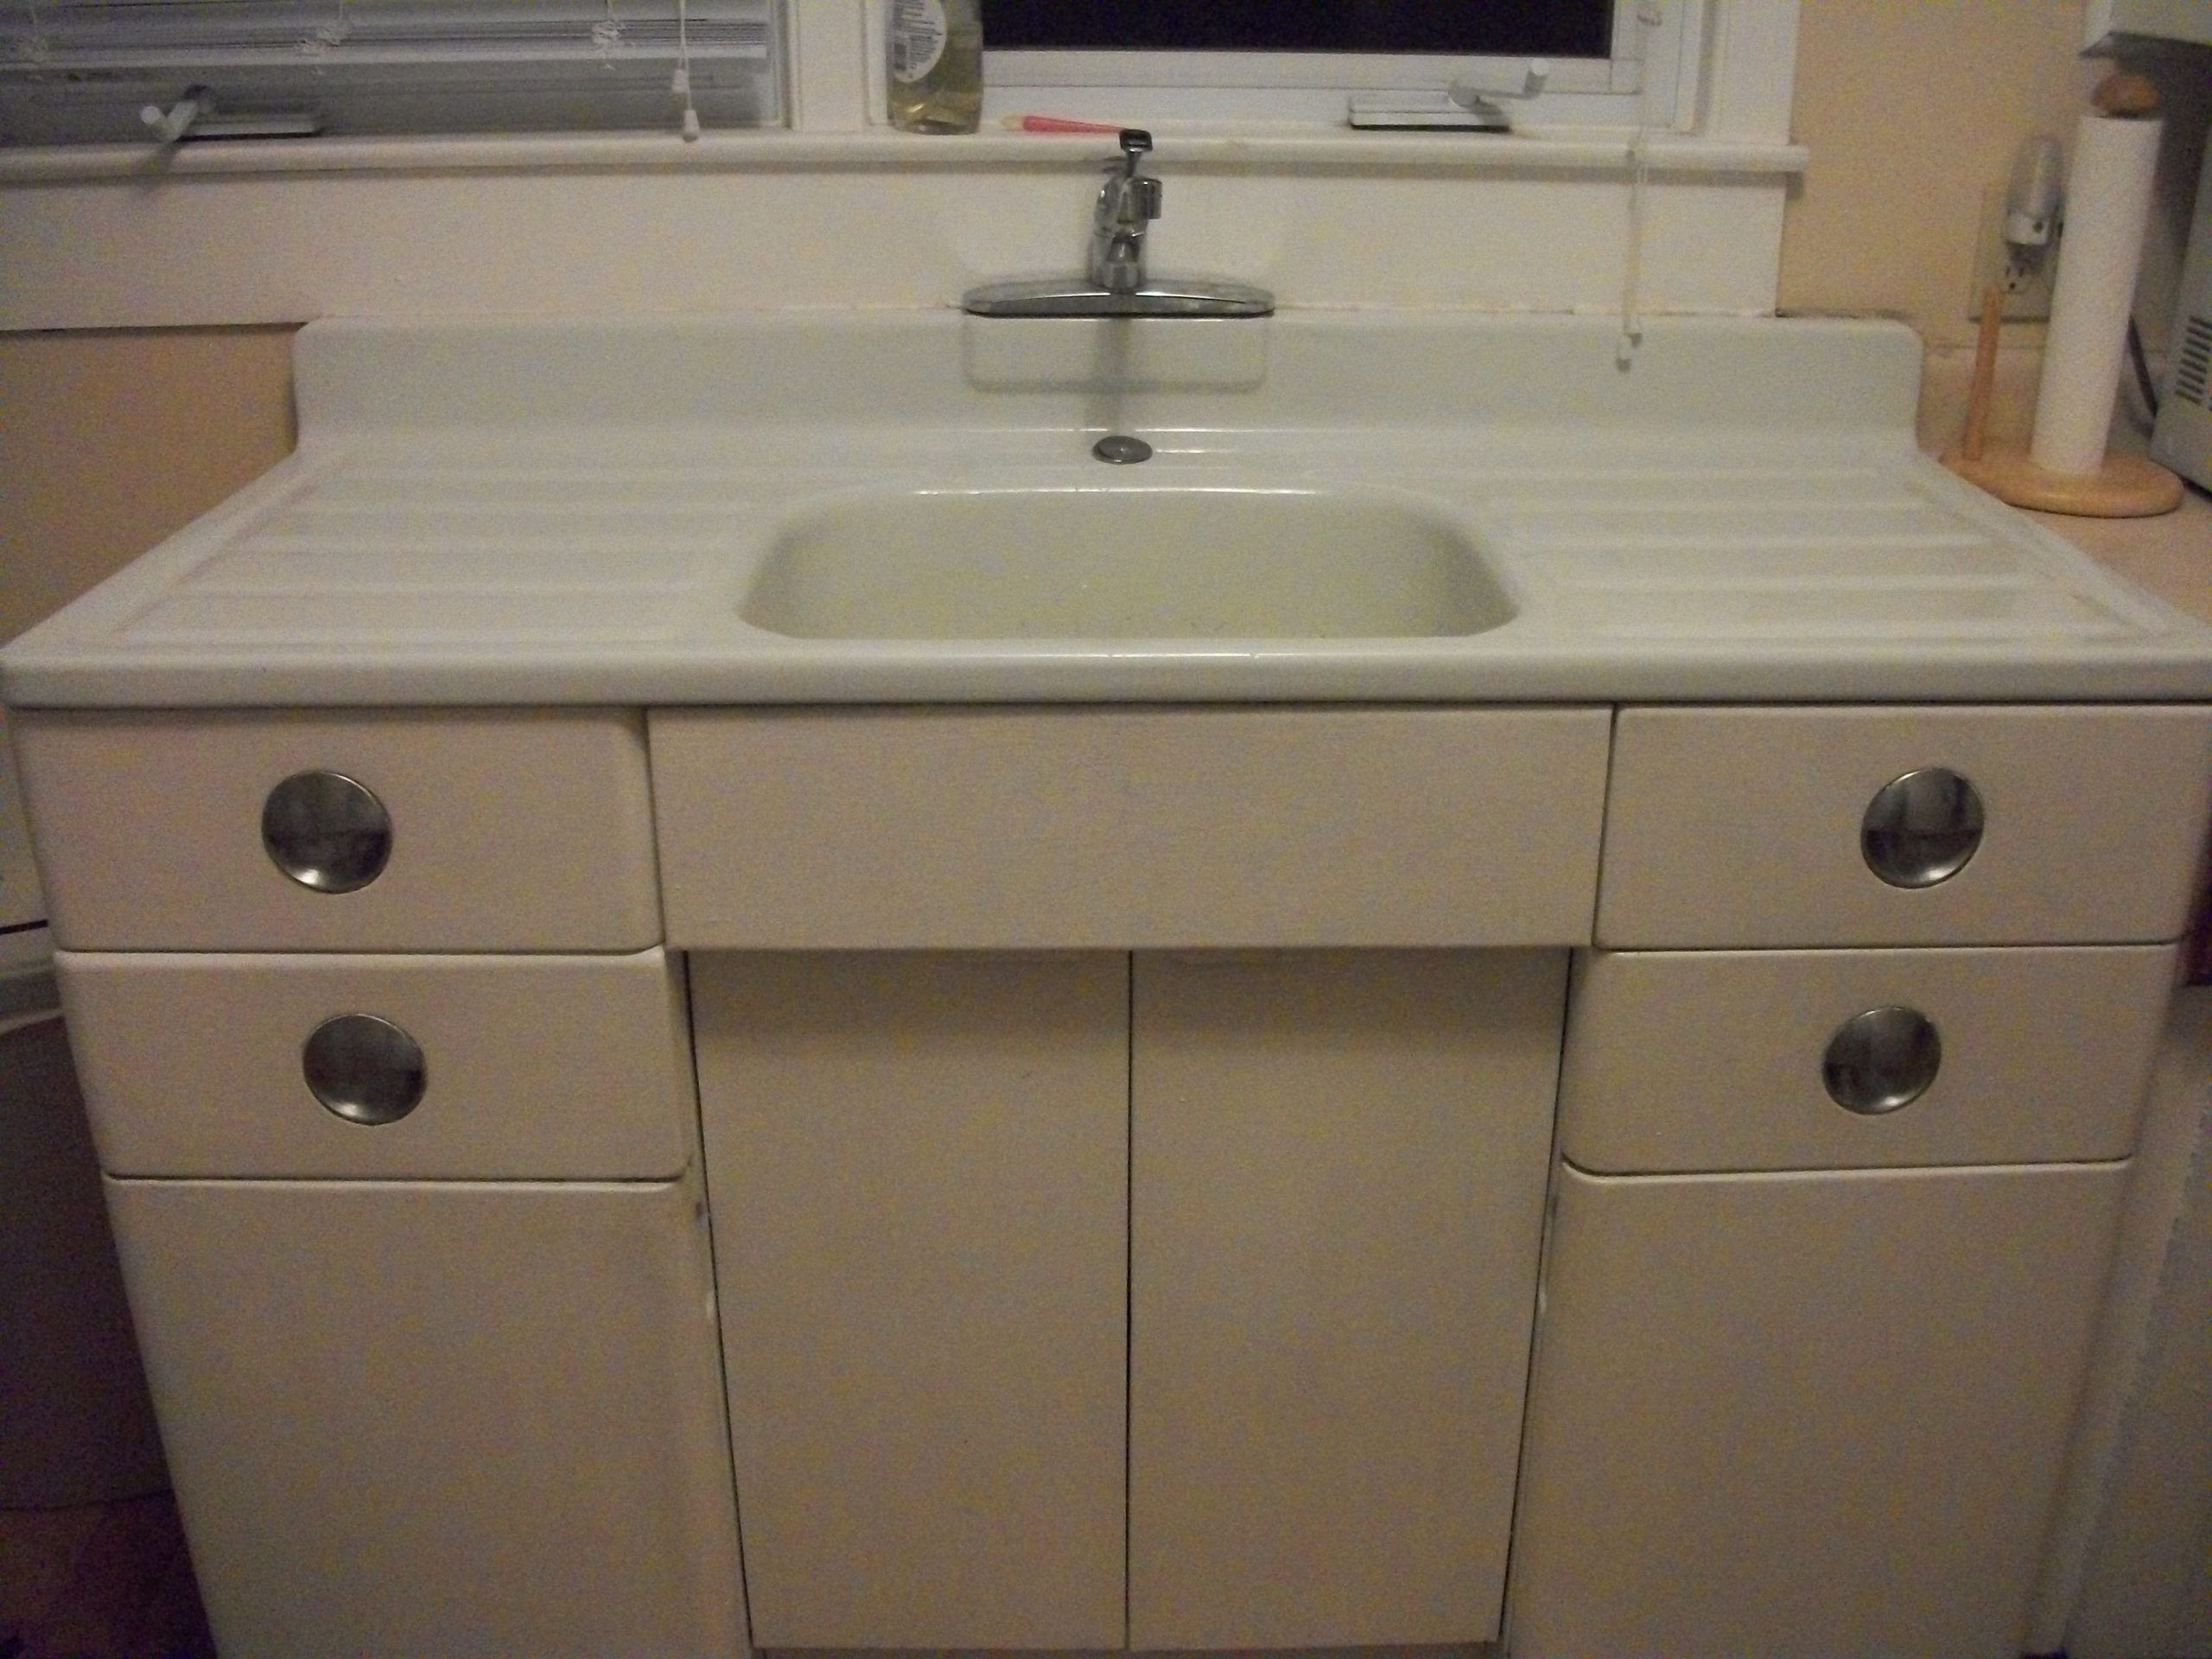 Antique Kitchen Sink And Cabinet In 2020 Metal Kitchen Cabinets Vintage Kitchen Sink Metal Kitchen